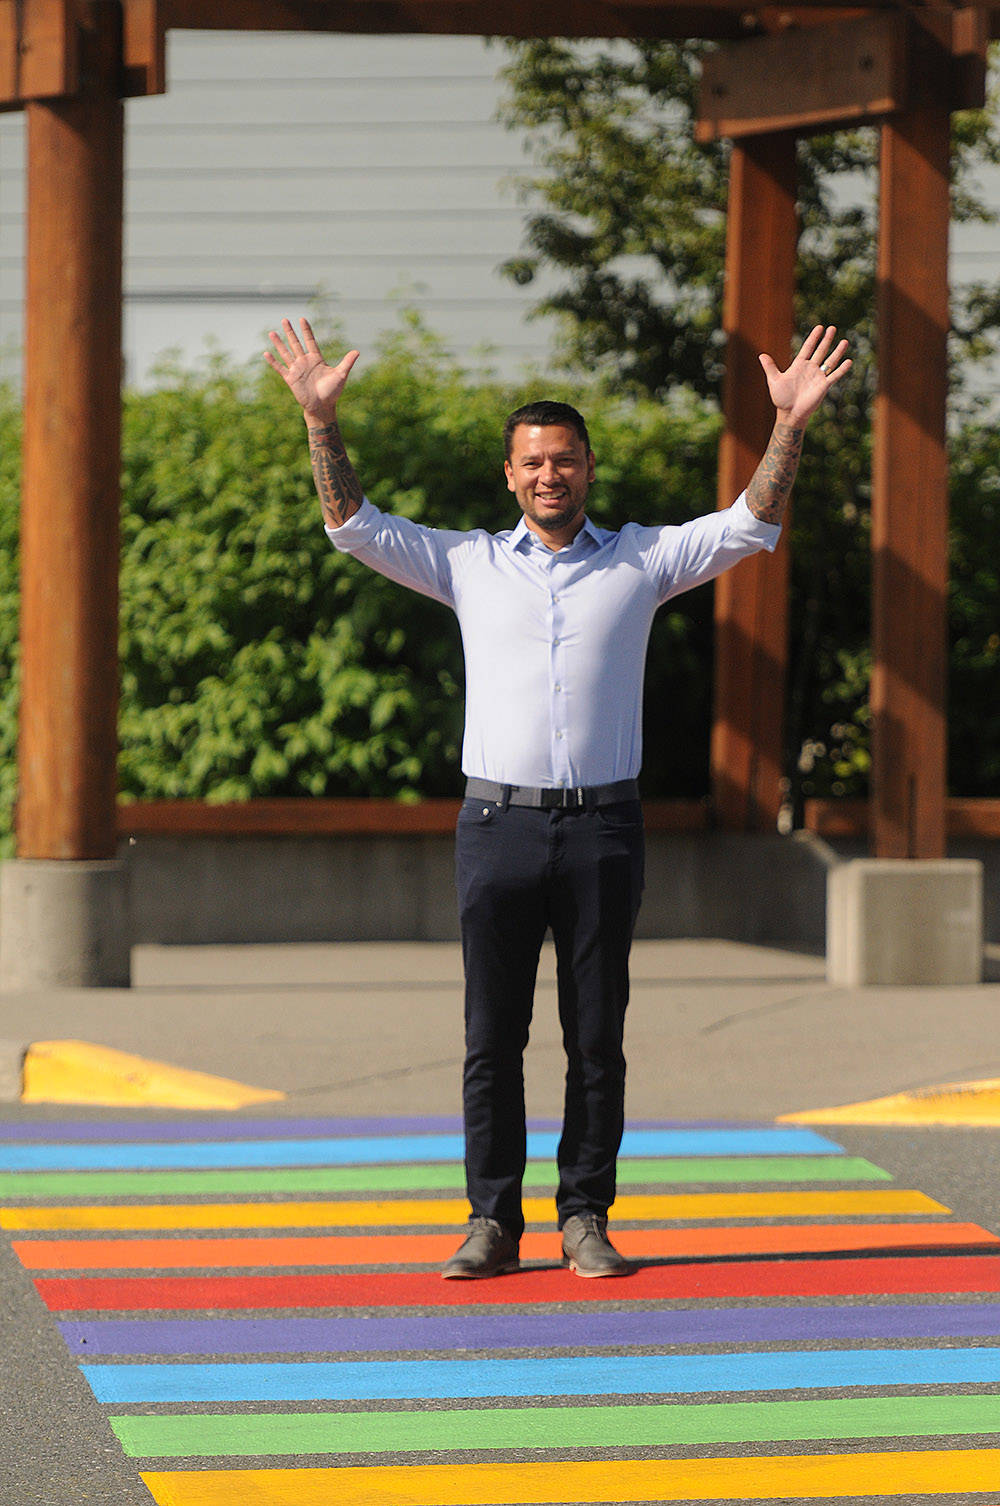 Squiala Chief David Jimmie stands in one of two freshly painted rainbow crosswalks at Eagle Landing shopping centre in Chilliwack on Tuesday morning. (Jenna Hauck/ The Progress)